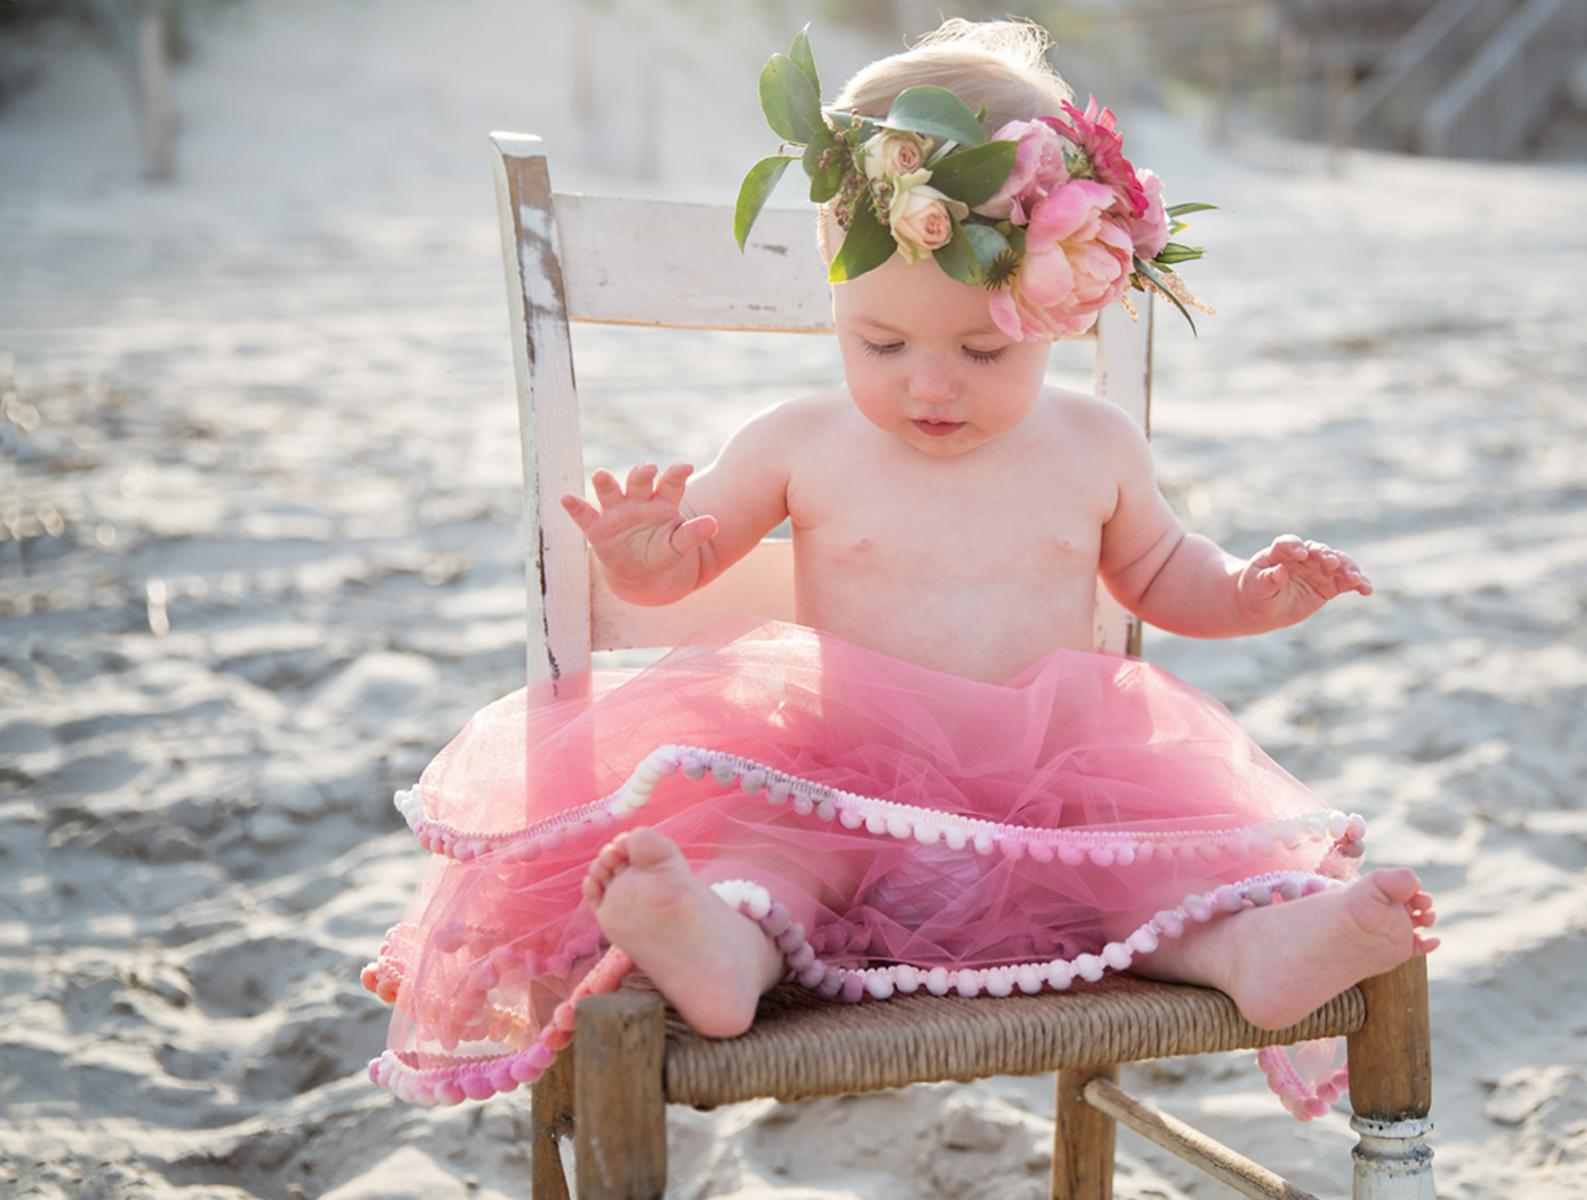 One year old birthday photos of girl in tutu and flower crown